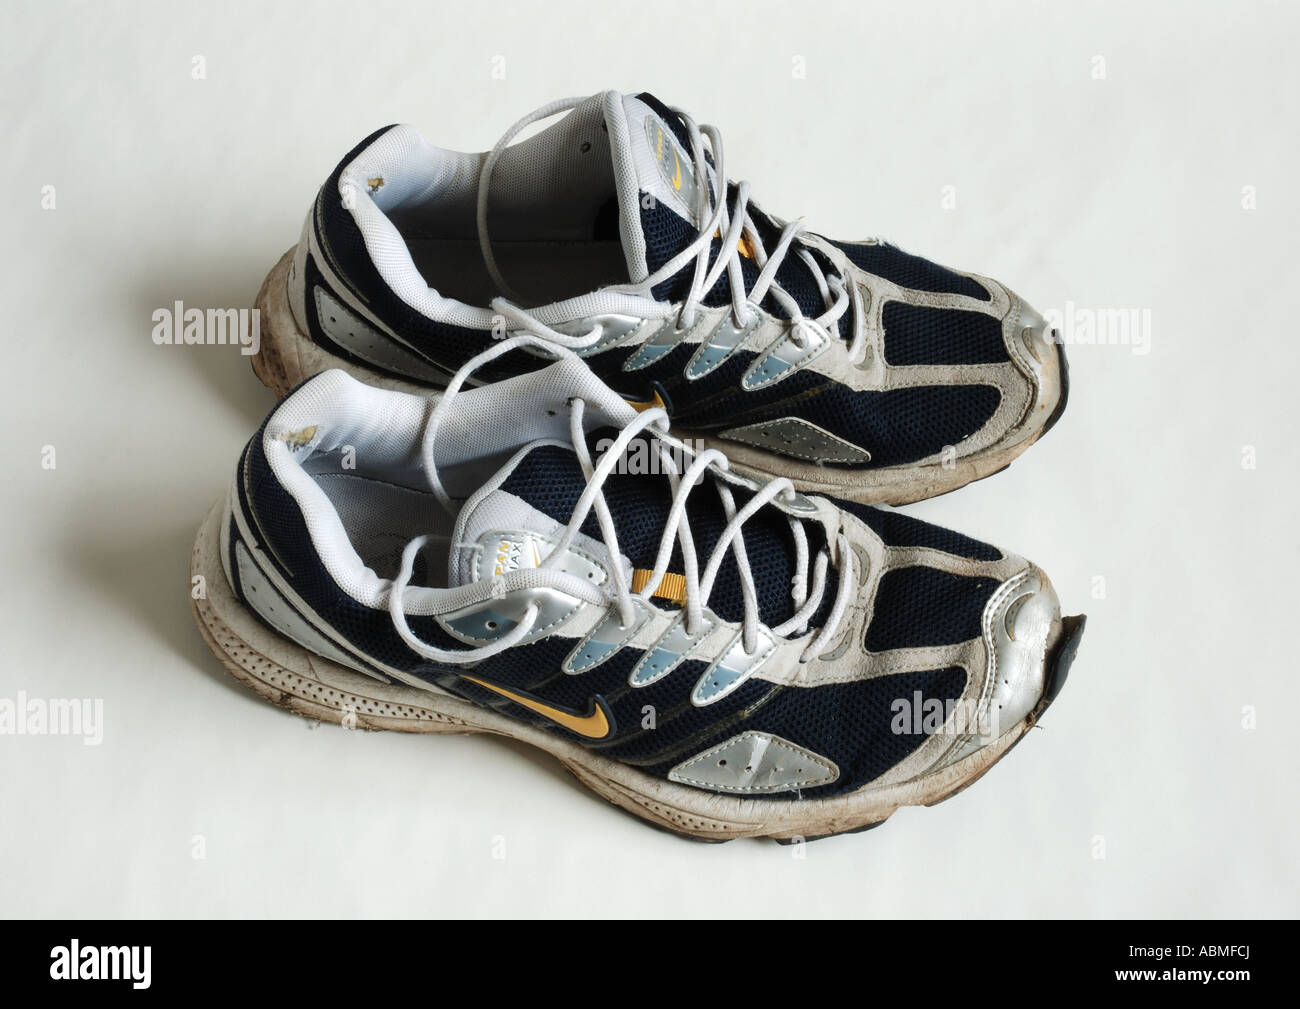 An old pair of Nike running shoes Stock